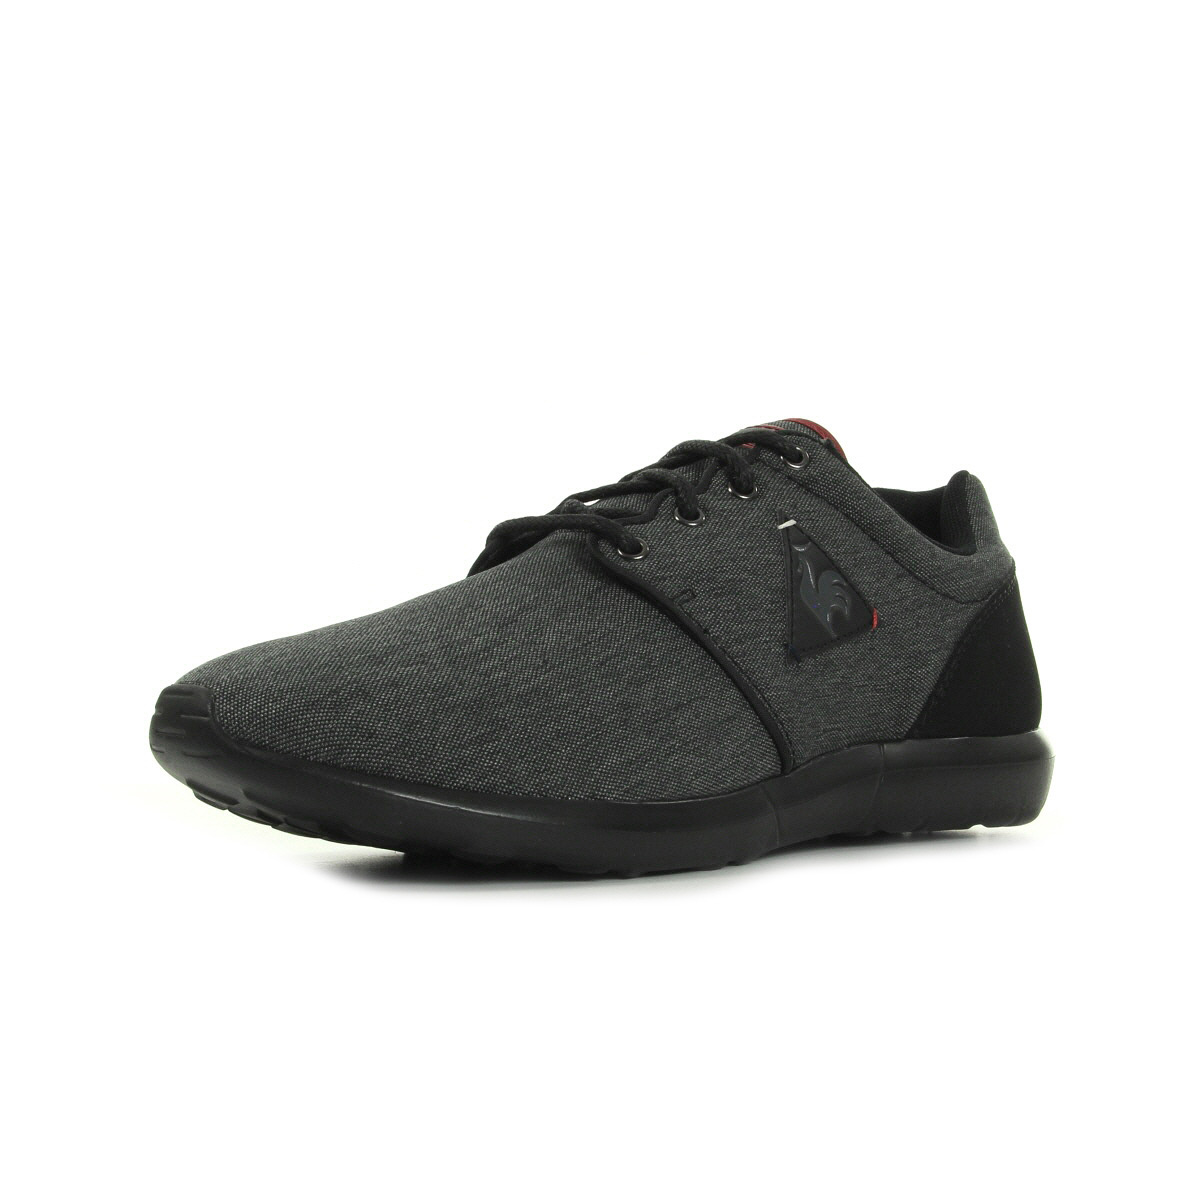 LE COQ SPORTIF - Chaussure loisirs homme Remilly 2 tons